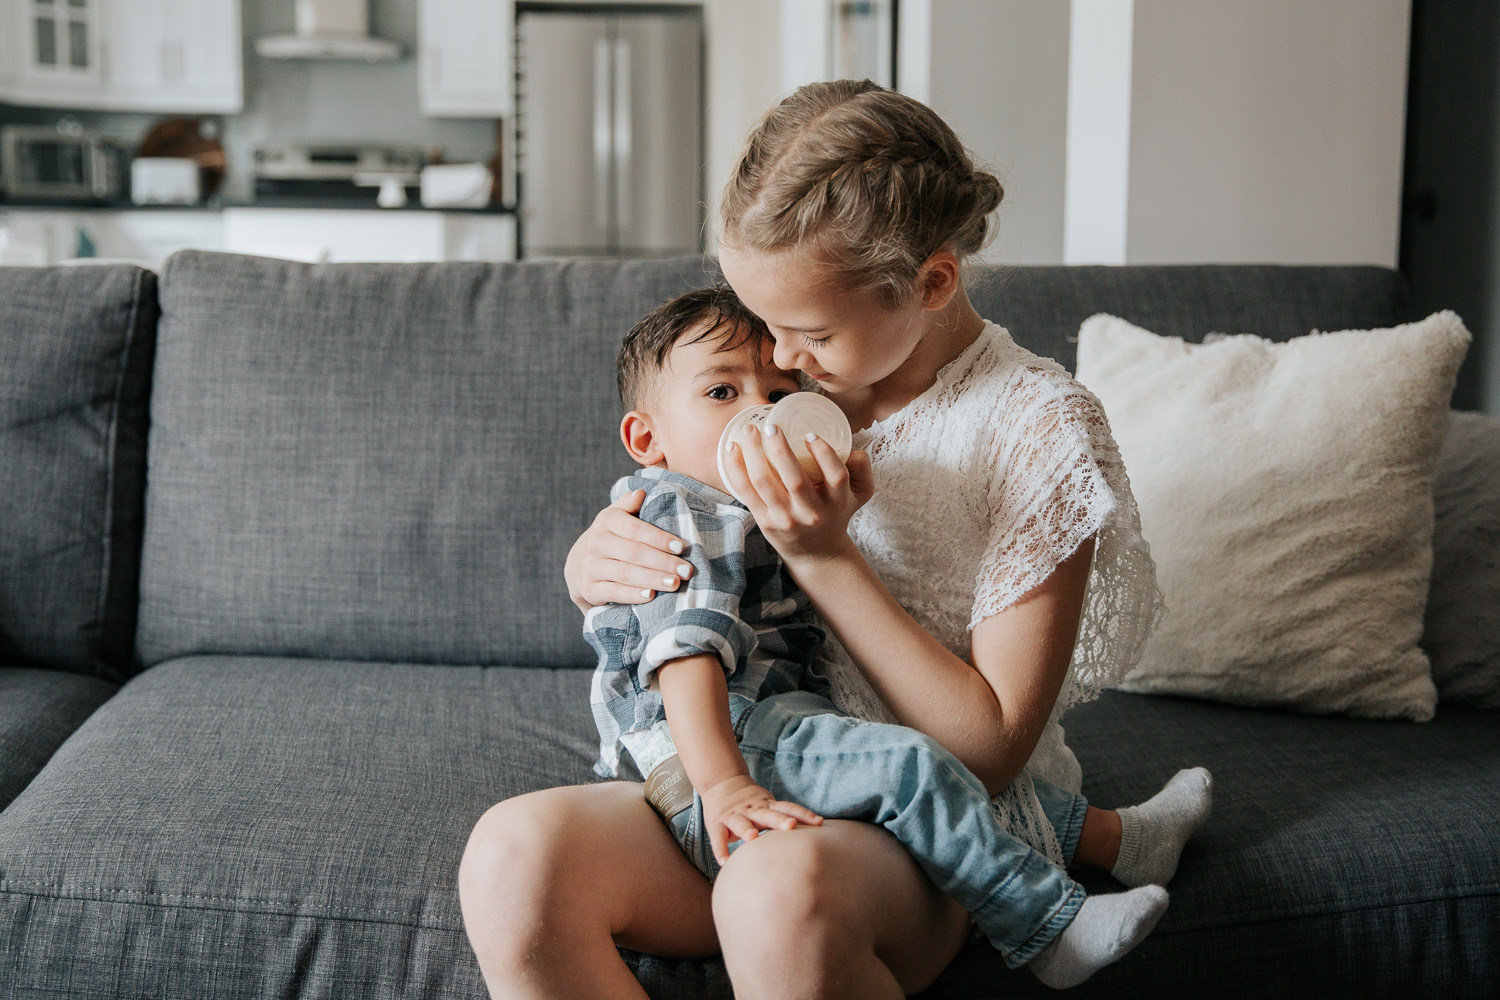 11 year old girl with blonde hair sitting on couch feeding 1 year old dark haired boy in shirt and jeans a bottle - Newmarket Lifestyle Photography